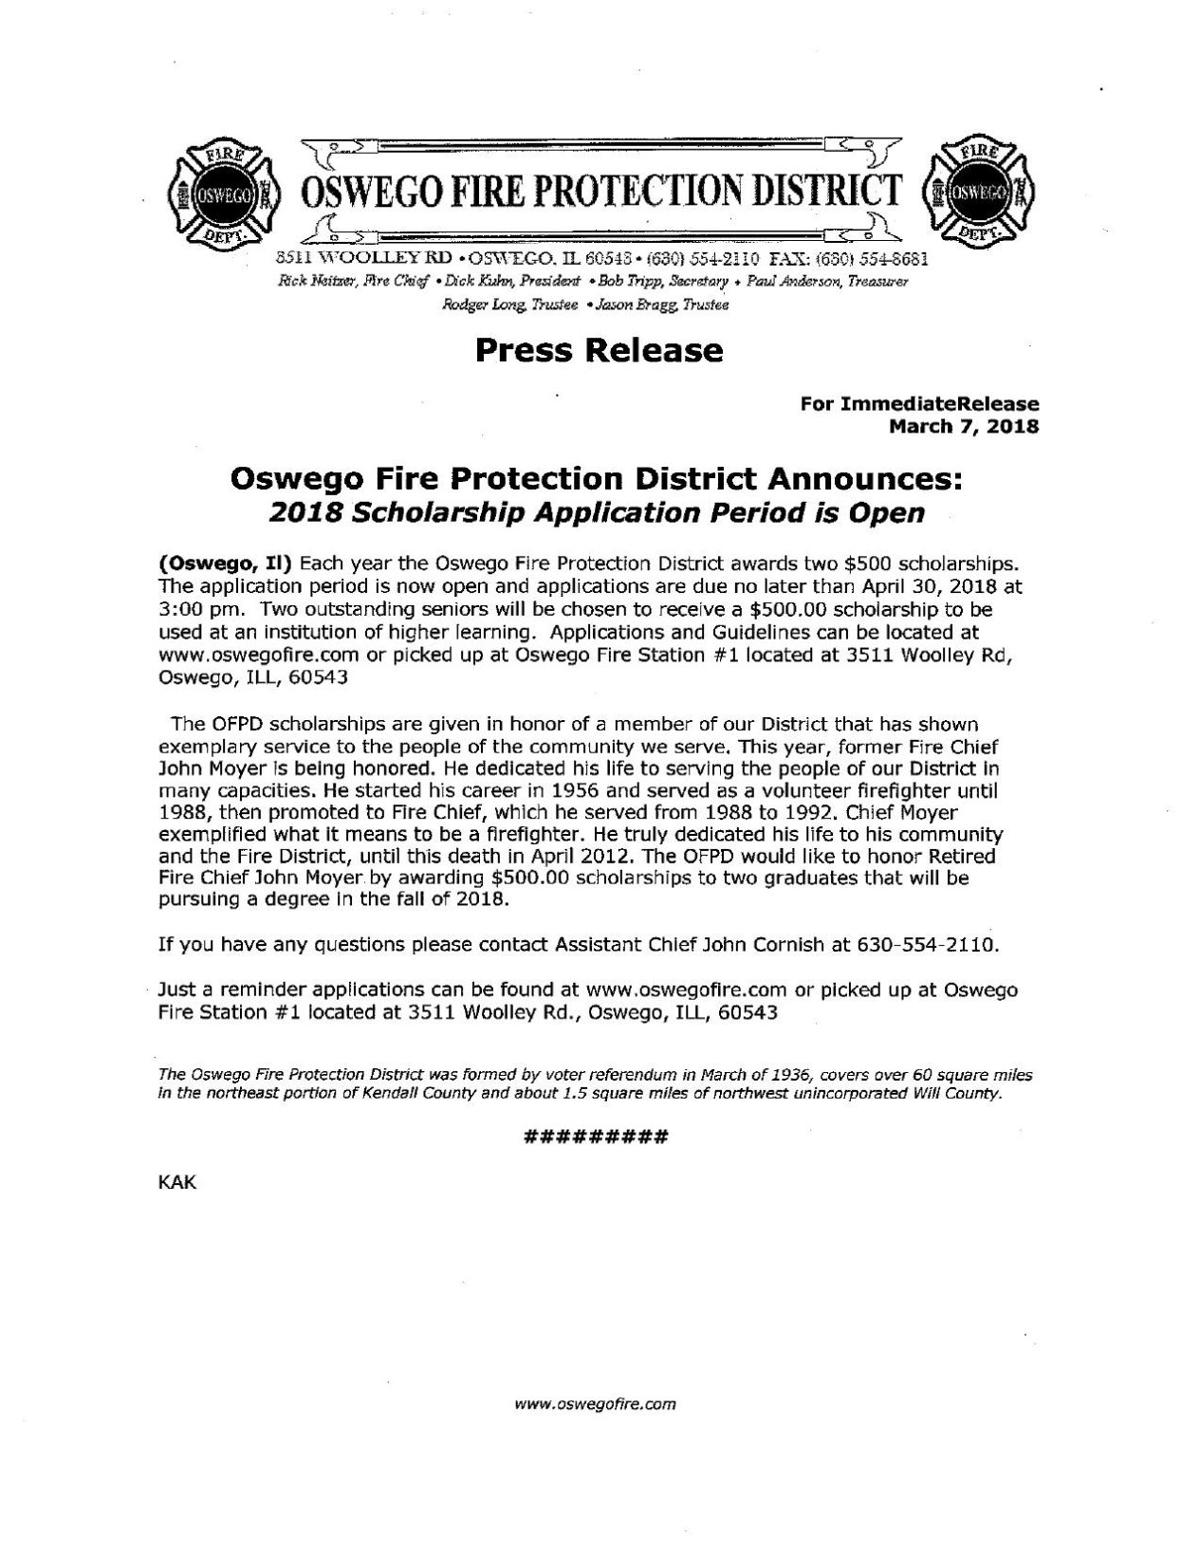 Oswego Fire Protection District Announces 2018 Application